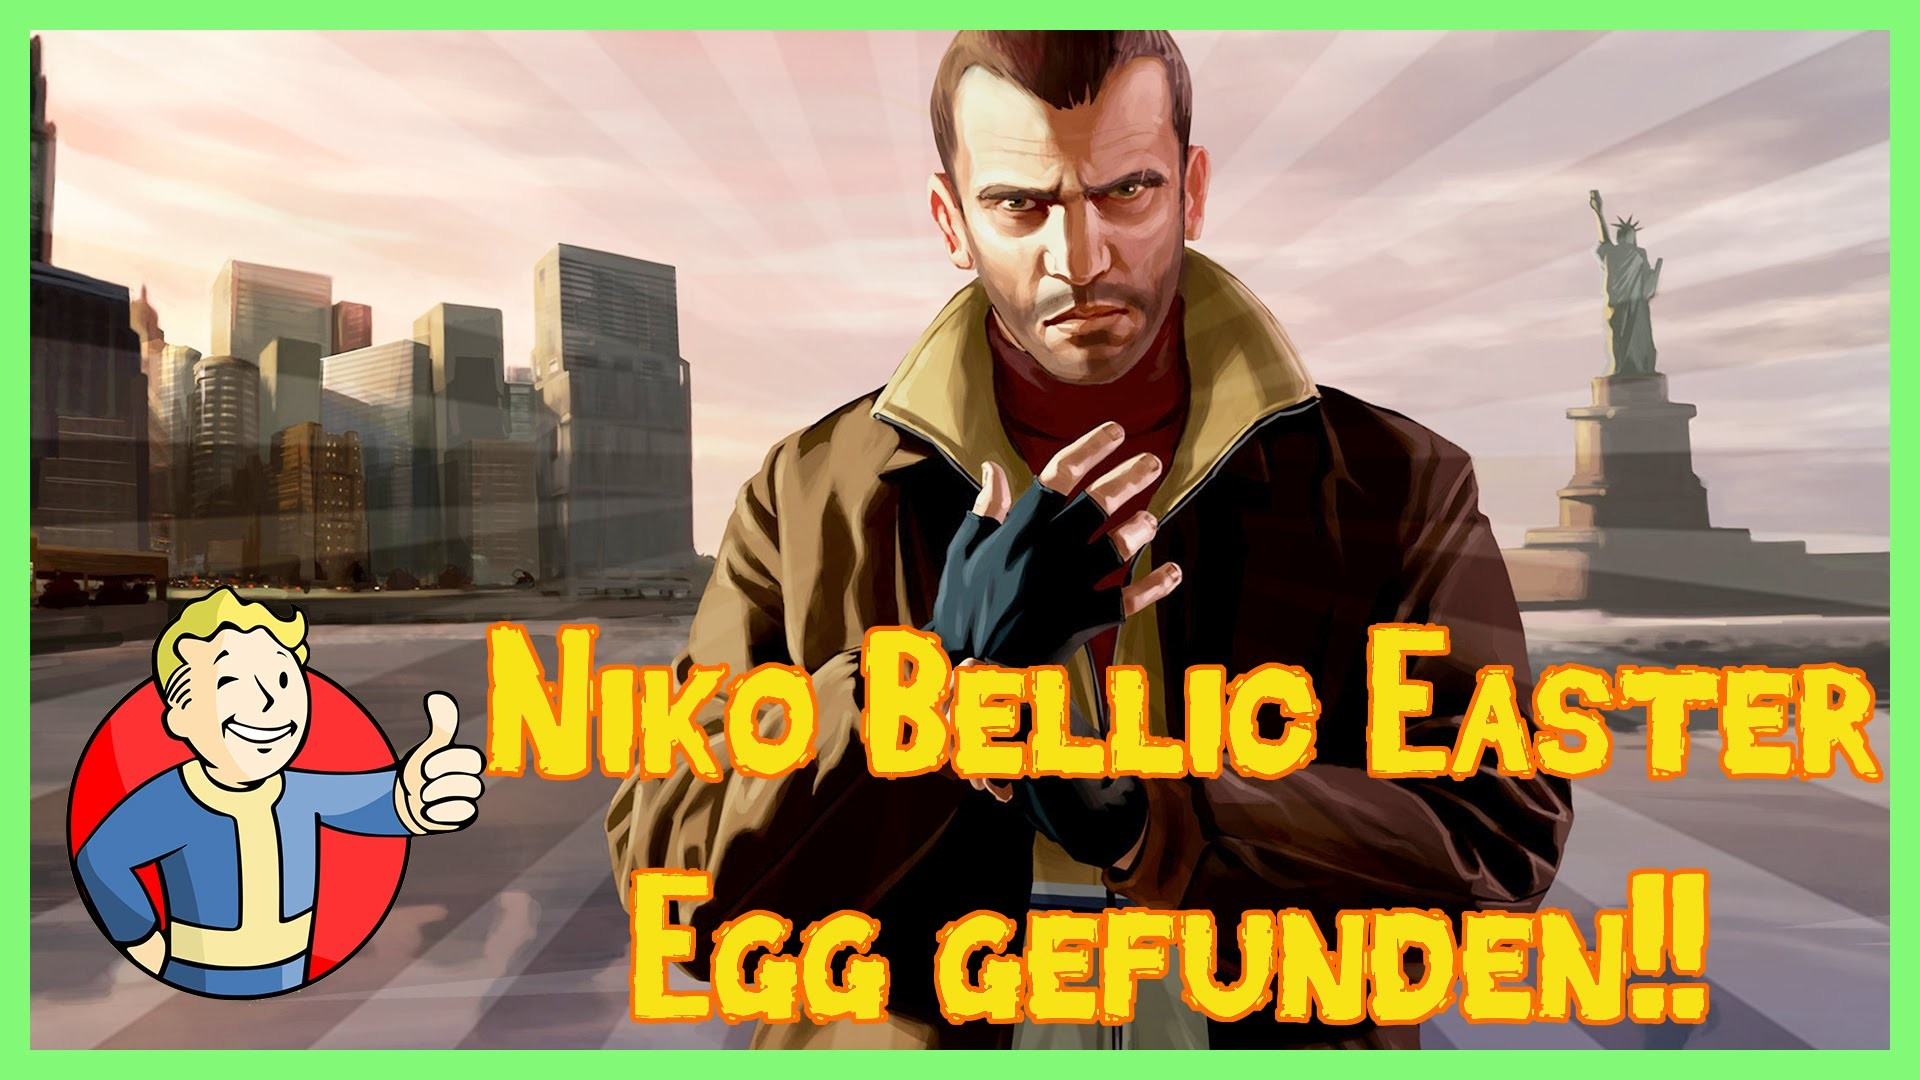 Res: 1920x1080, Fallout 4 - Niko Bellic Easter Egg gefunden!! GTA 4 Easter Egg (Fallout 4  Secrets)